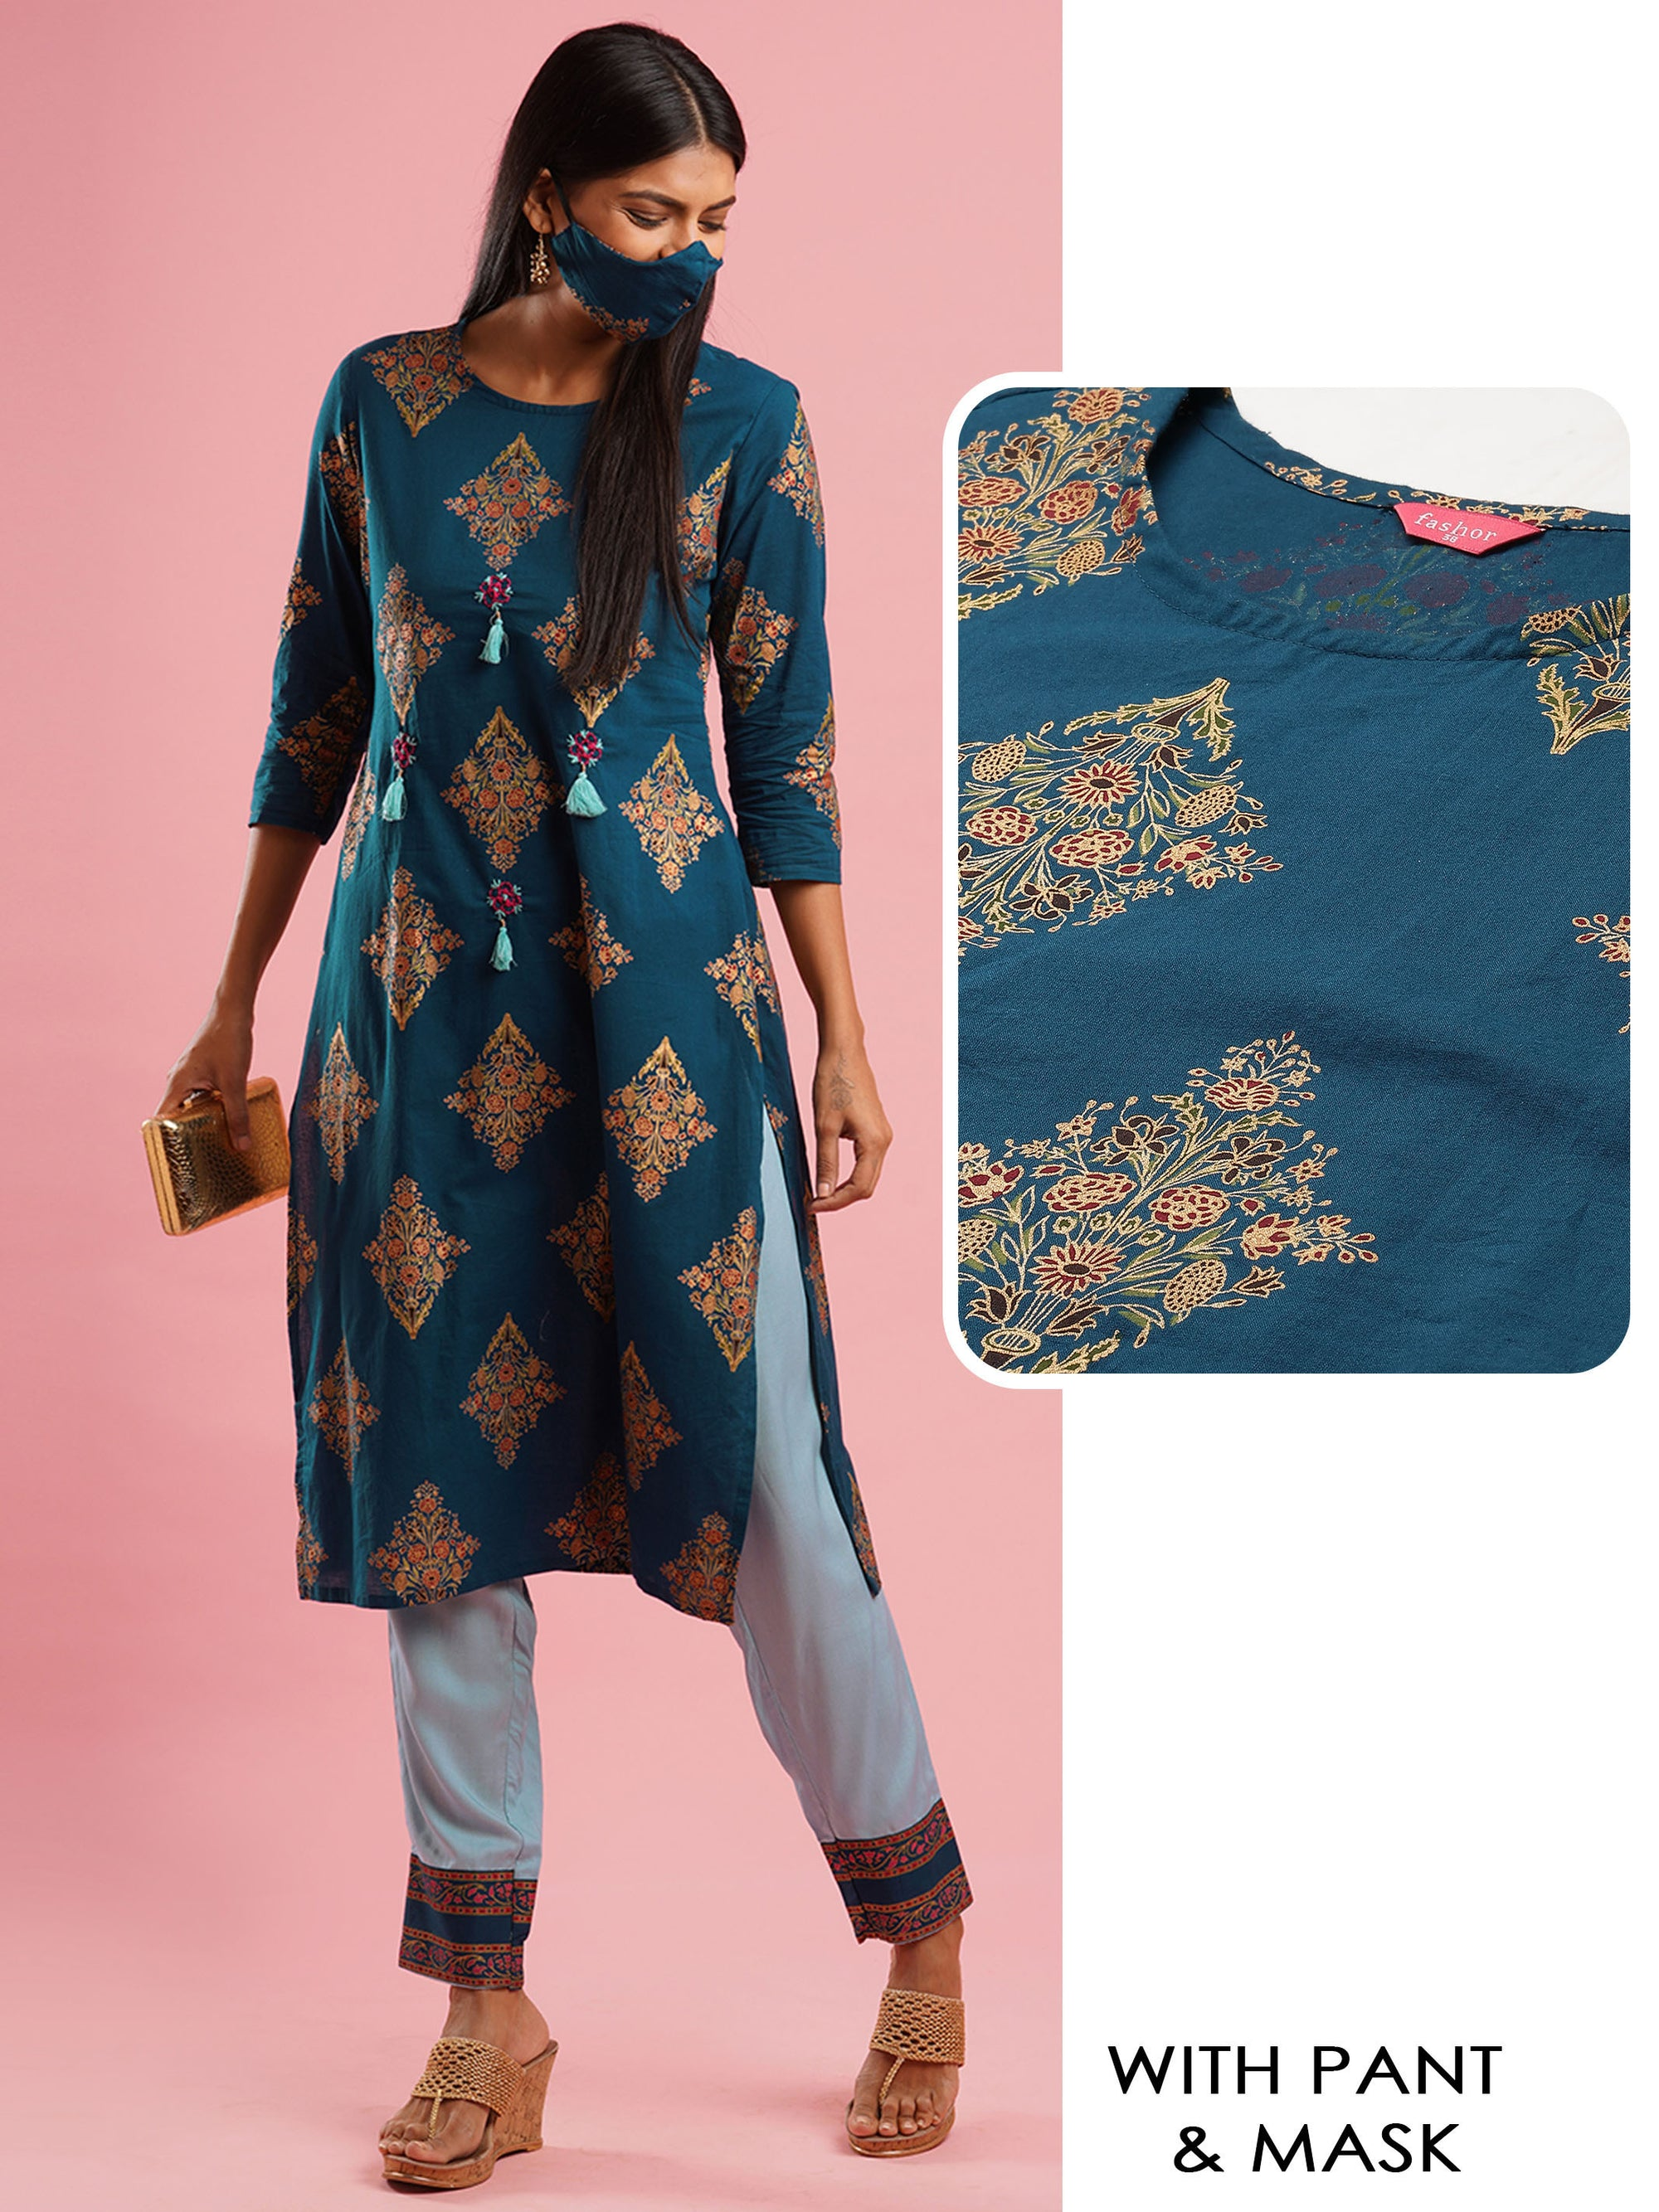 Ethnic Foil Printed & Handcrafted Straight Kurta with Pant & 2-Ply Mask – Teal